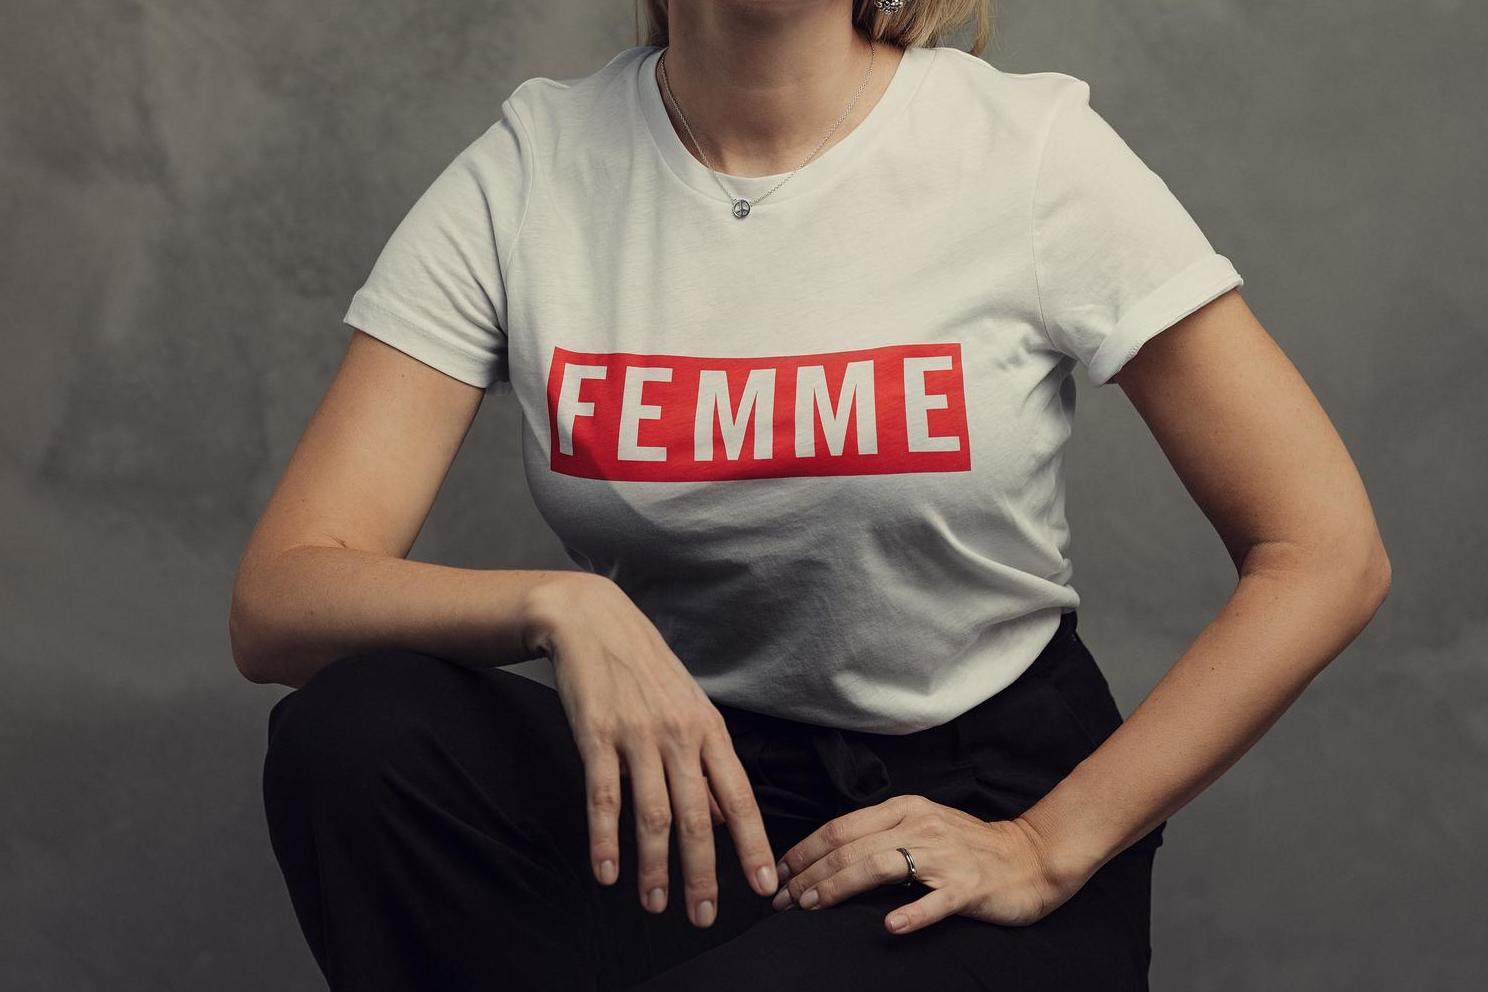 Feminist Apparel's CEO allegedly fires staff after they uncover his online admission of sexual misconduct